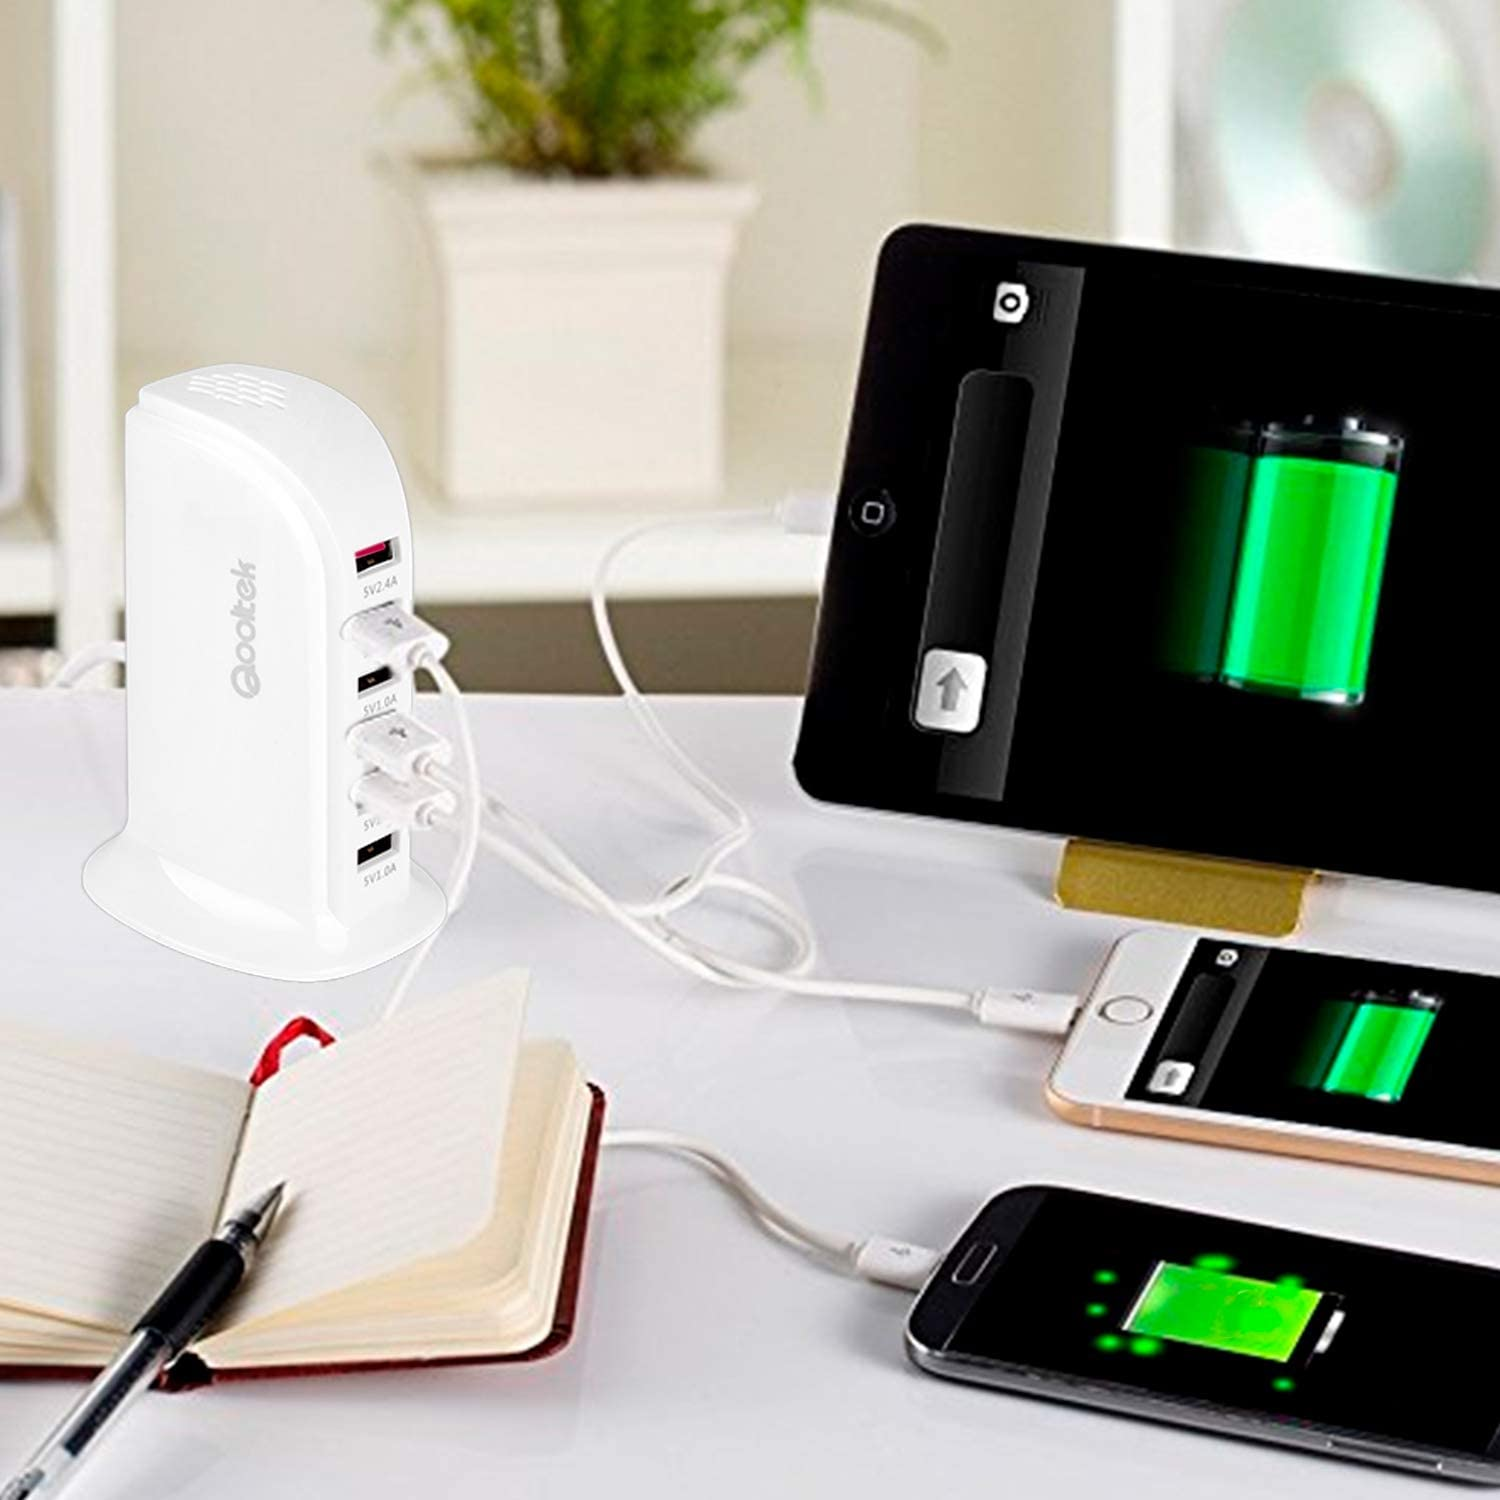 iPhone//7//6s//Plus White Qooltek 30W 6 Port USB Charger Tower Portable USB Charging Station Desktop Wall Charger for iPhone 8 iPhone X iPad Galaxy S7//S6//Edge